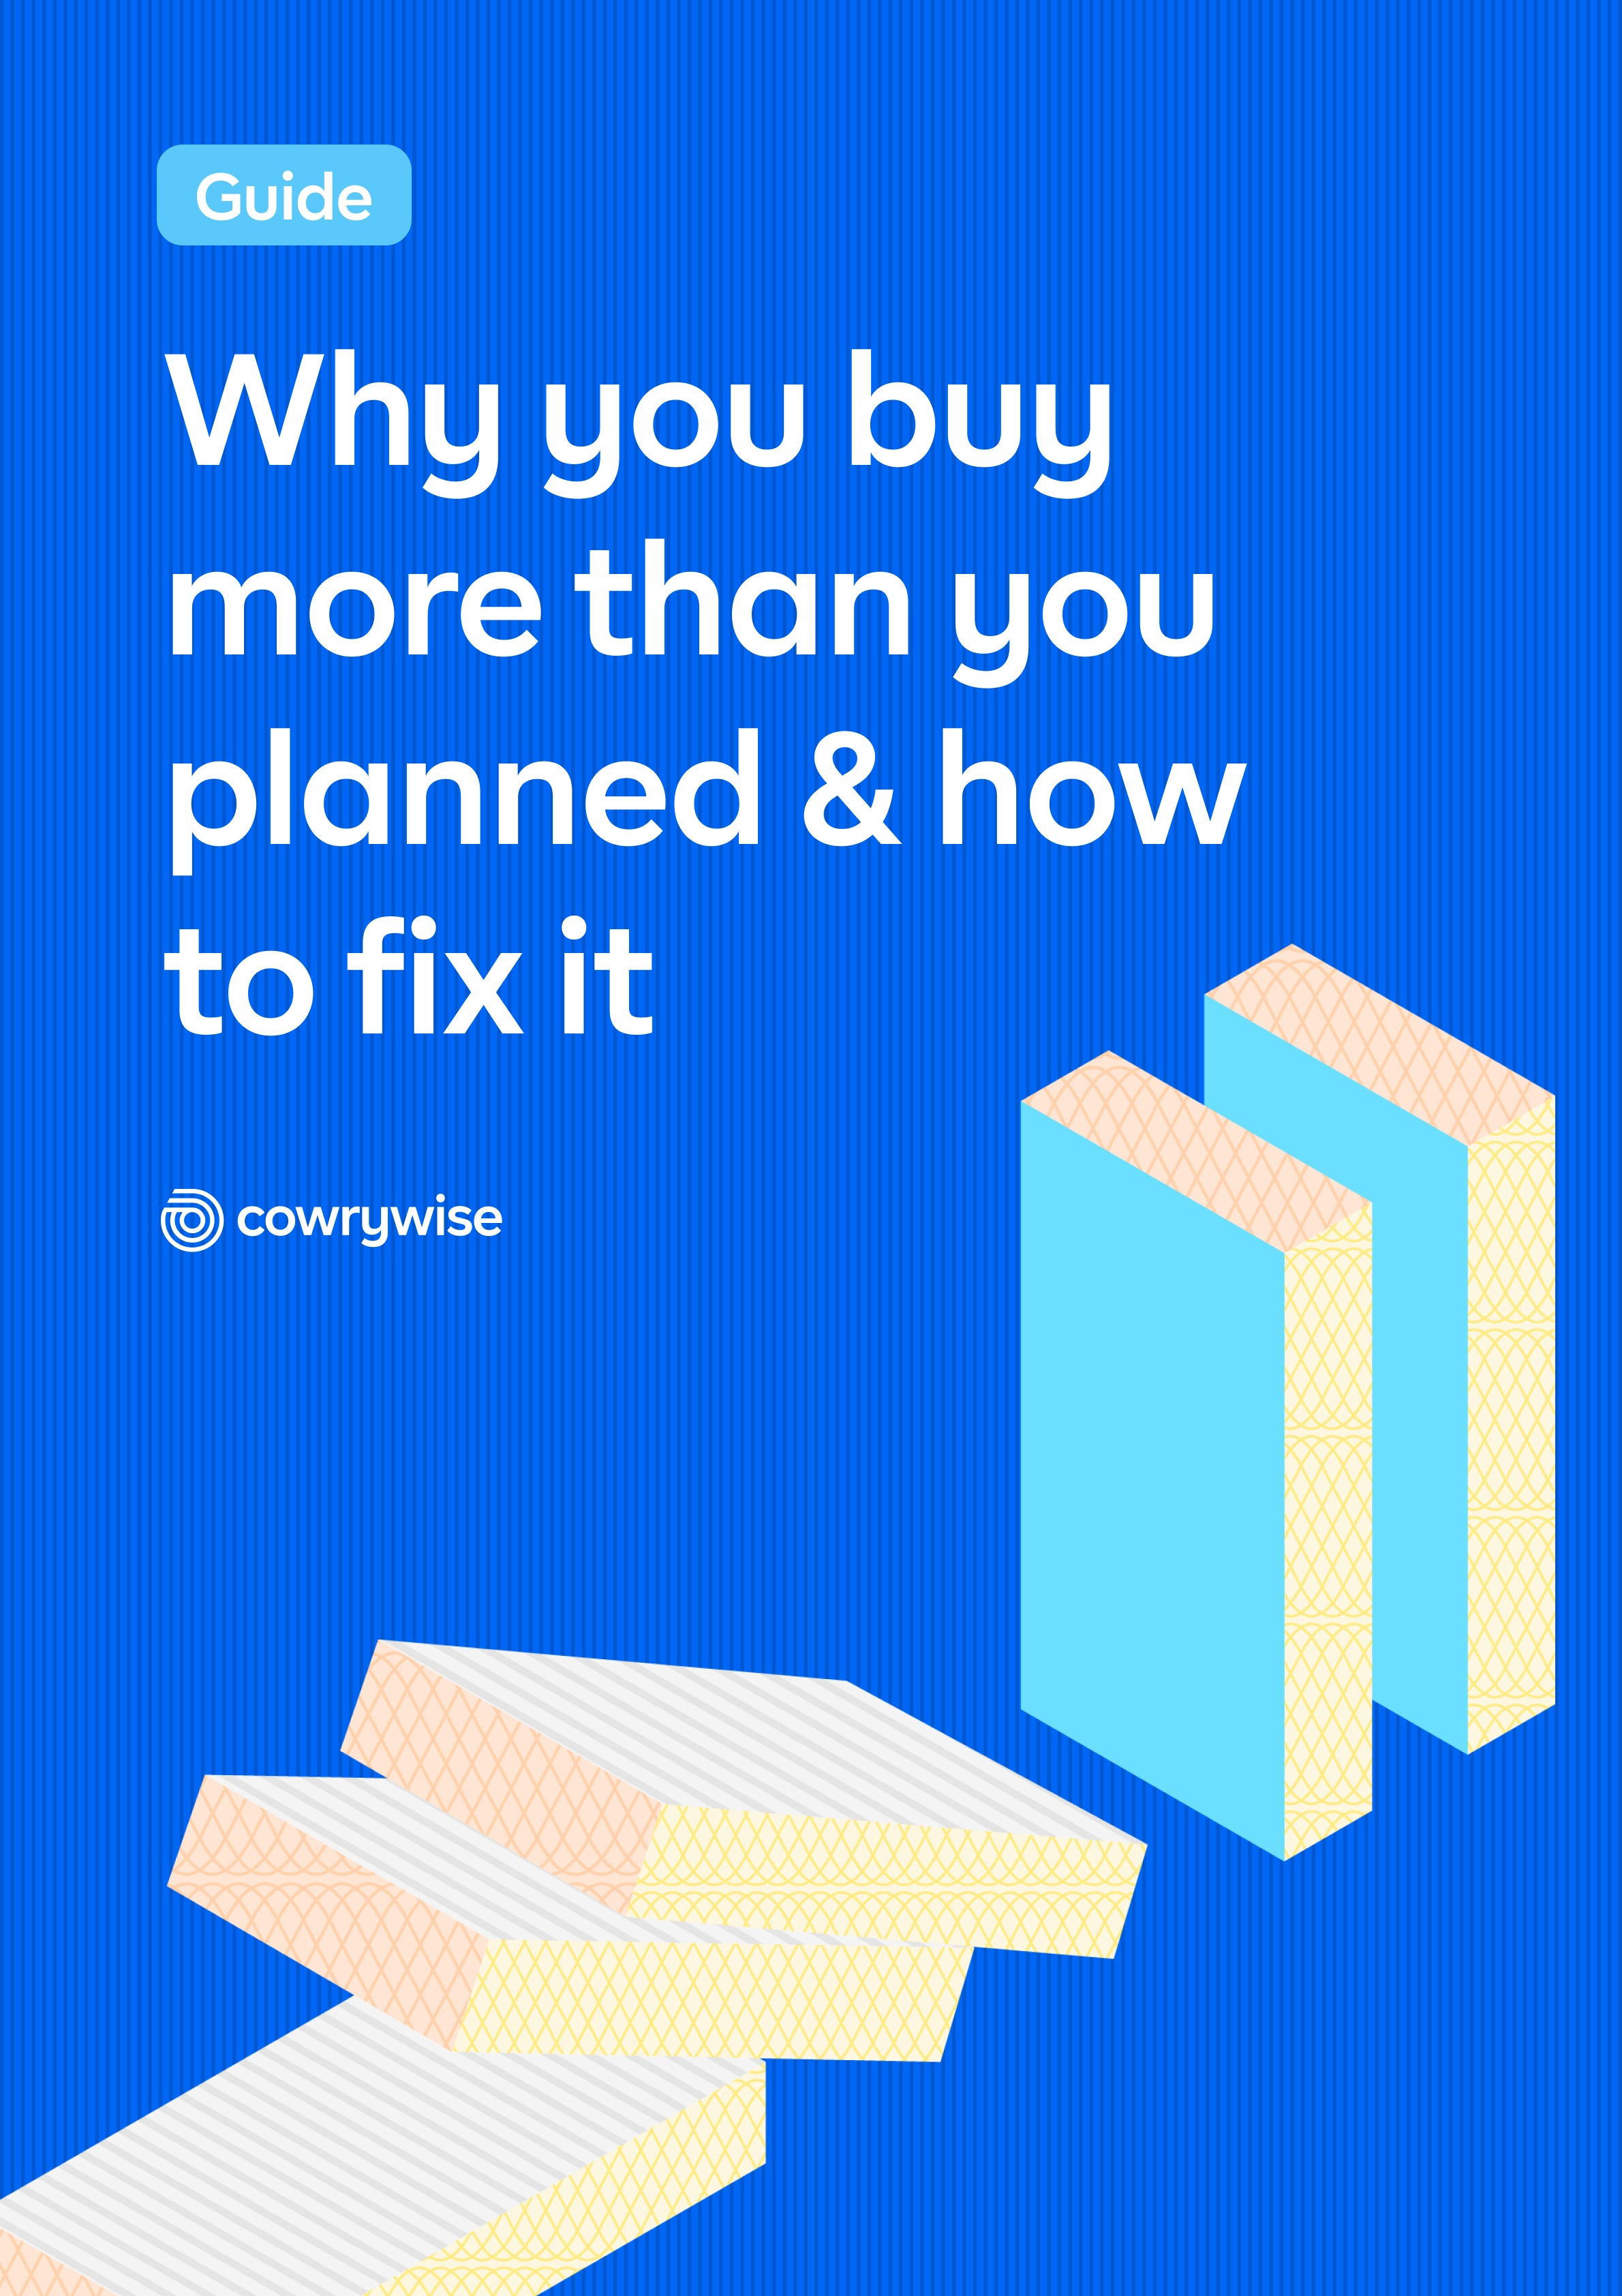 Why You Buy More Than You Planned & How to Fix It